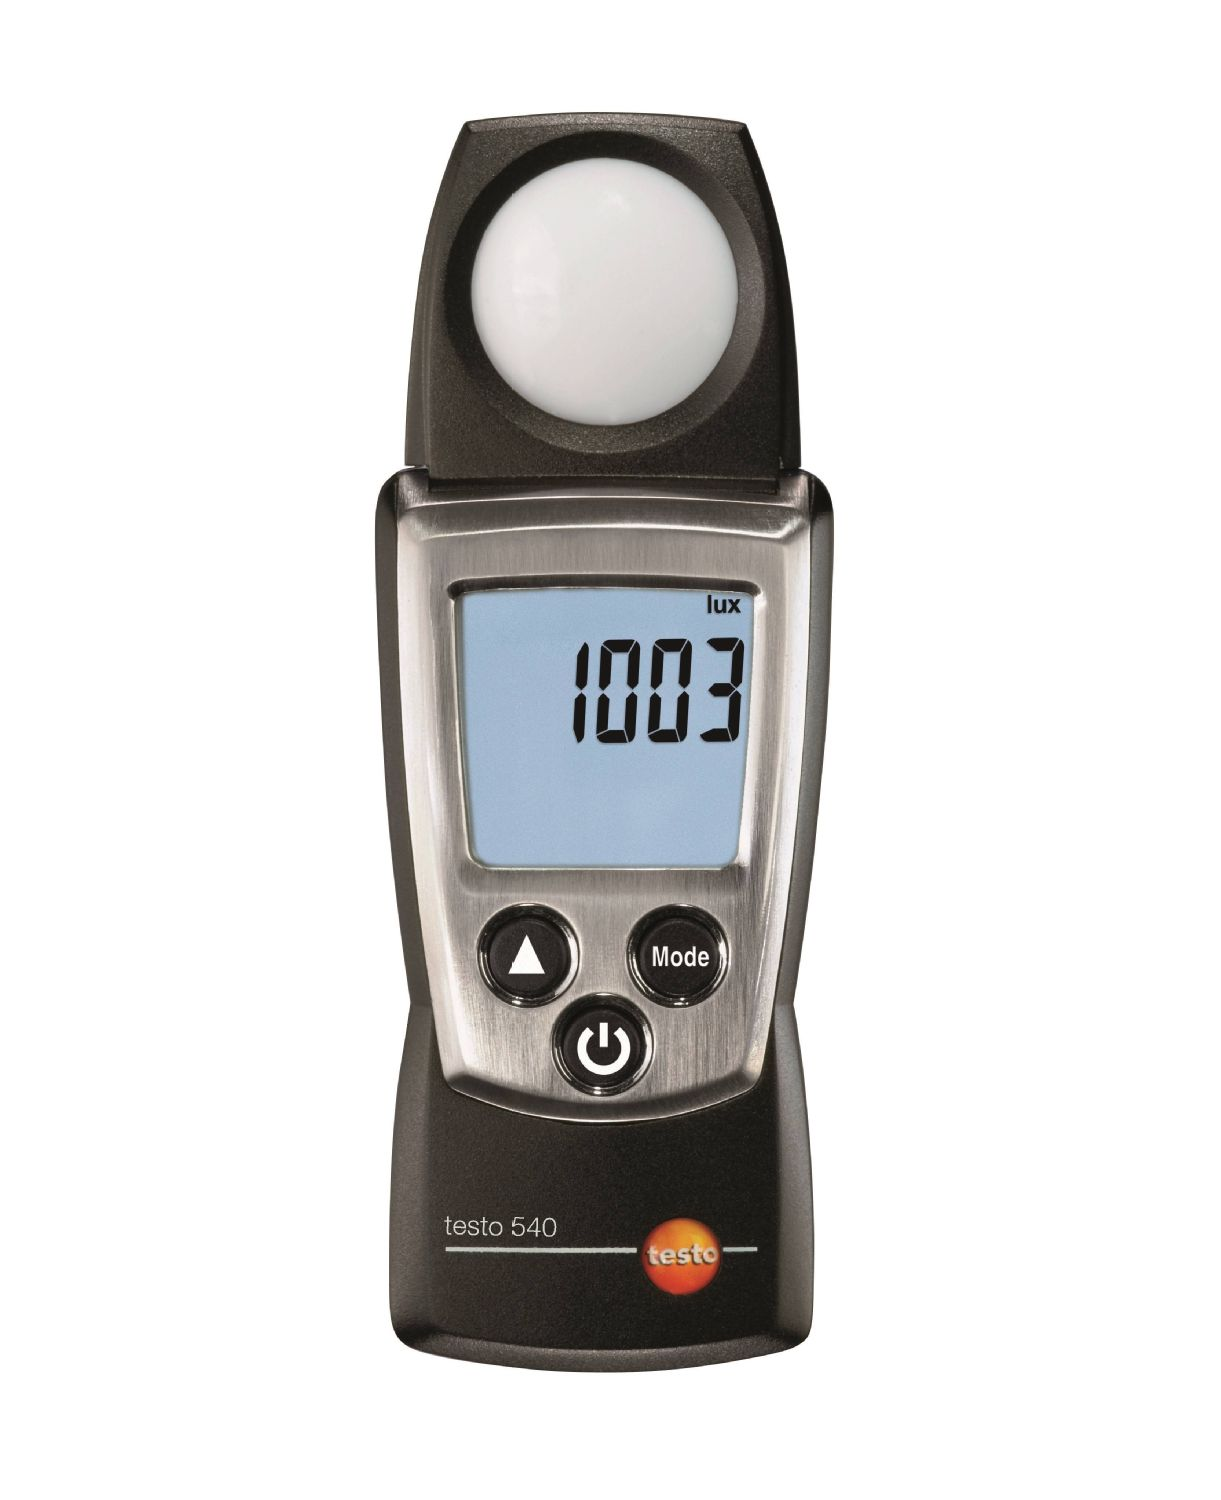 TESTO 540 - LUX Meter – 0 to 99,999 Lux